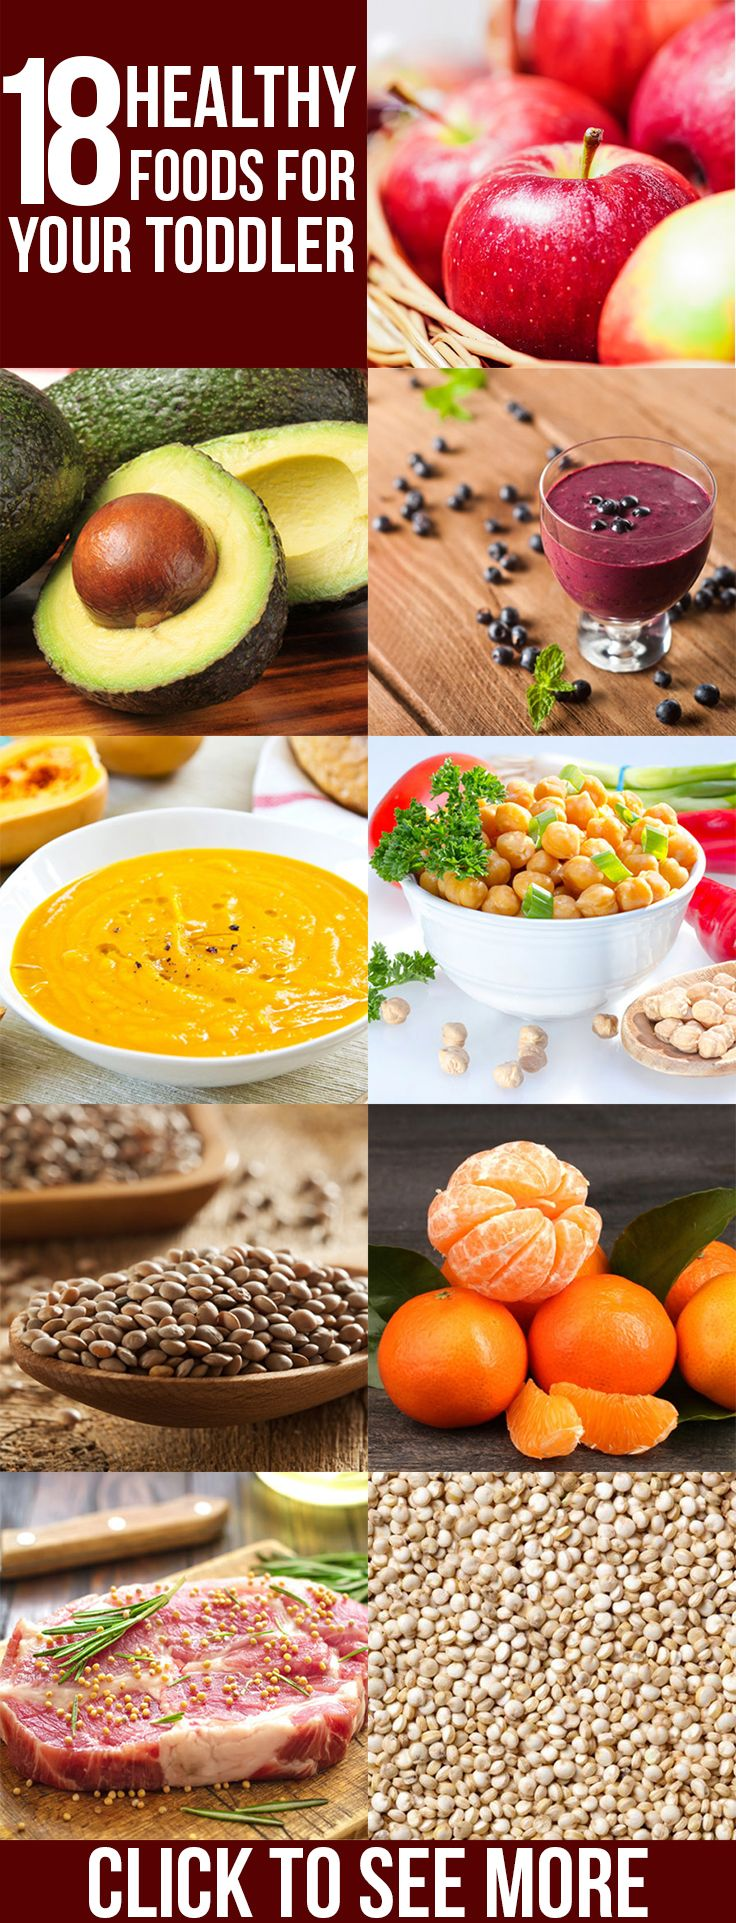 1000+ ideas about Toddler Nutrition on Pinterest | Healthy ...